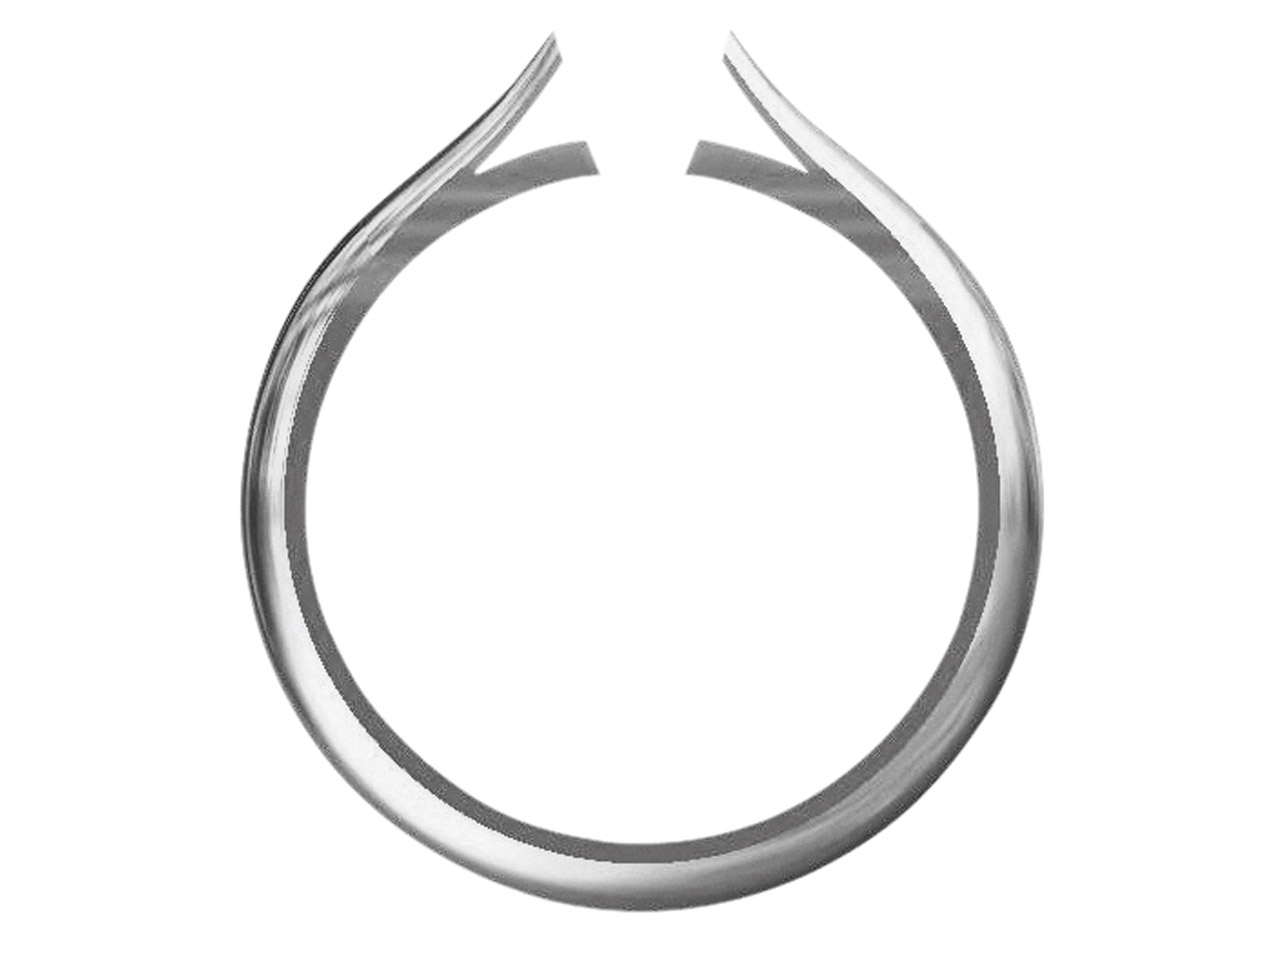 Platinum Medium Ss2 Tapered Ring   Shank Hallmarked Without Cheniers  Size M